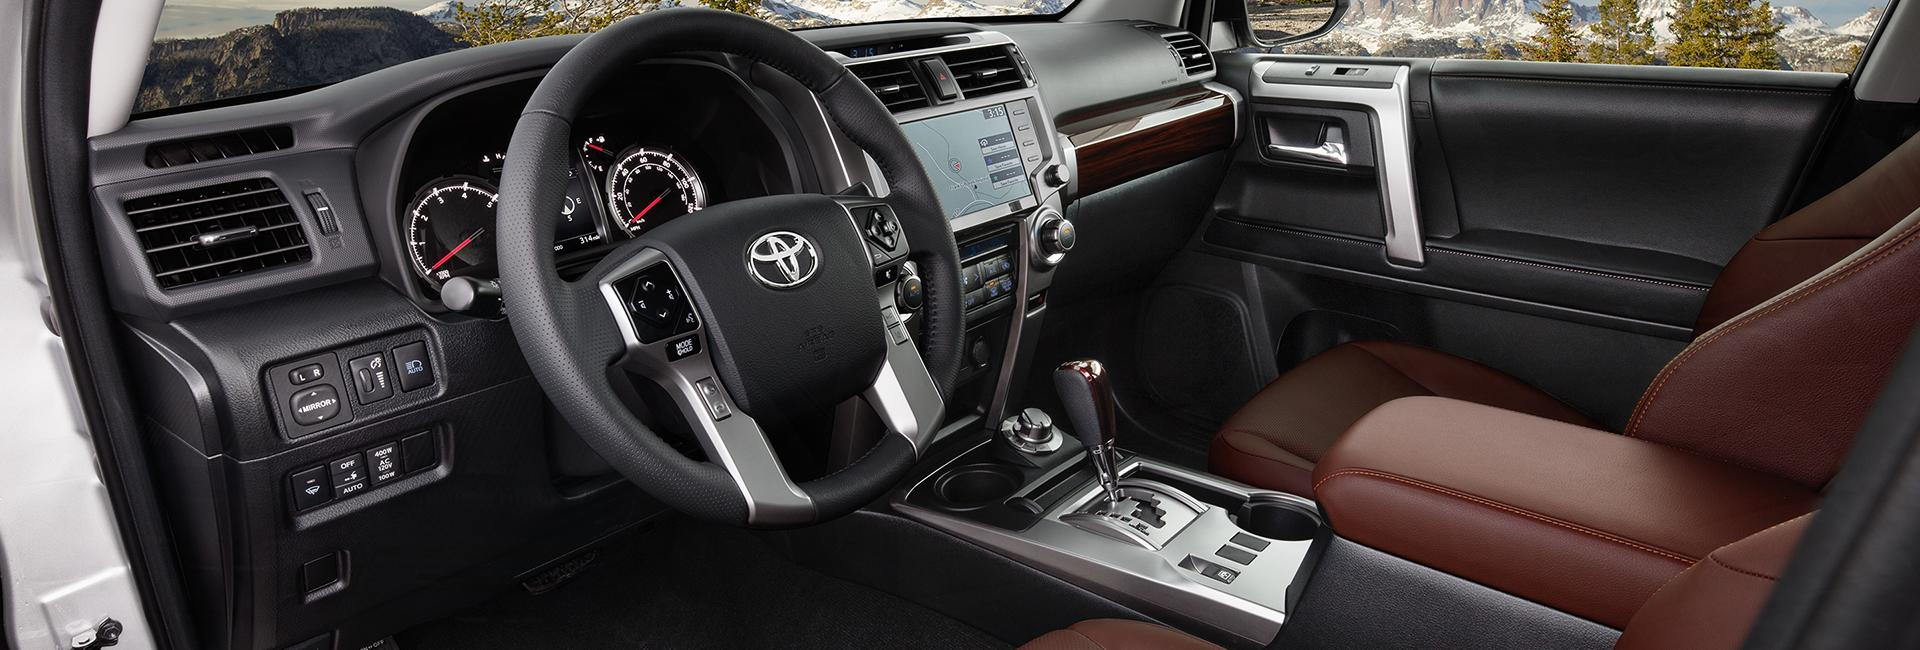 Picture of the interior of the 2020 Toyota 4Runner for sale at Spitzer Toyota